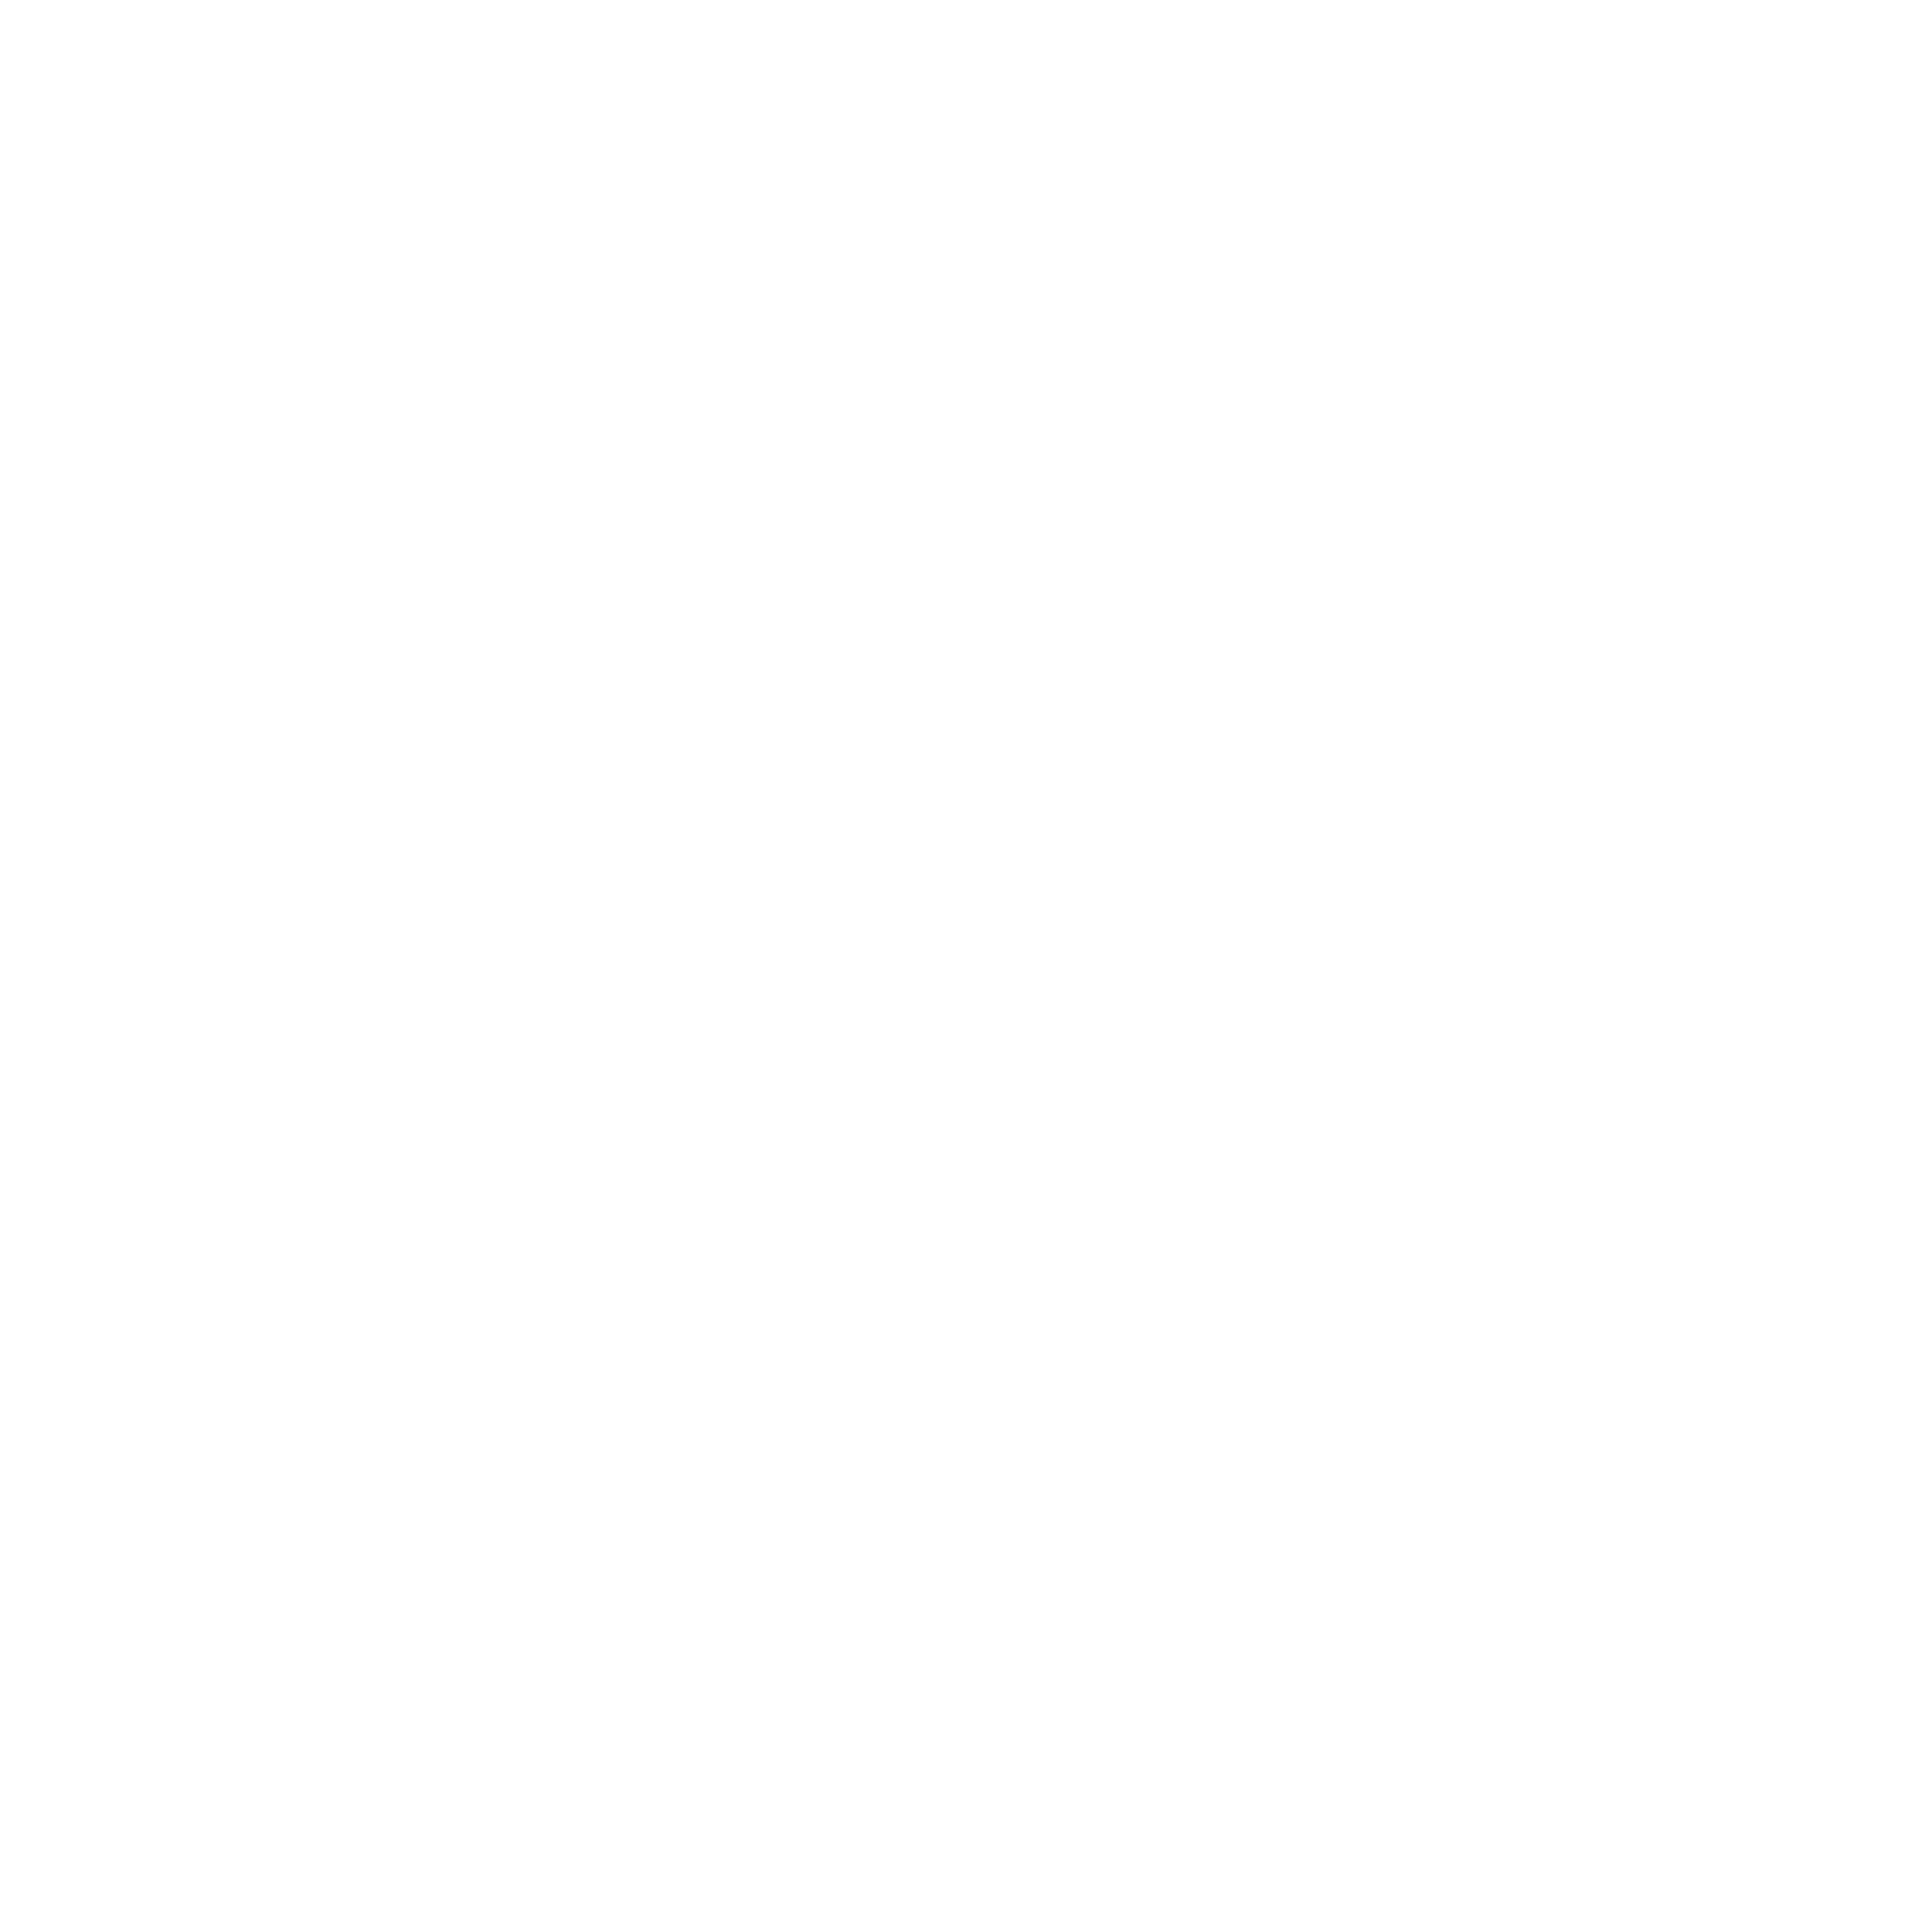 Turkish Cosmetics